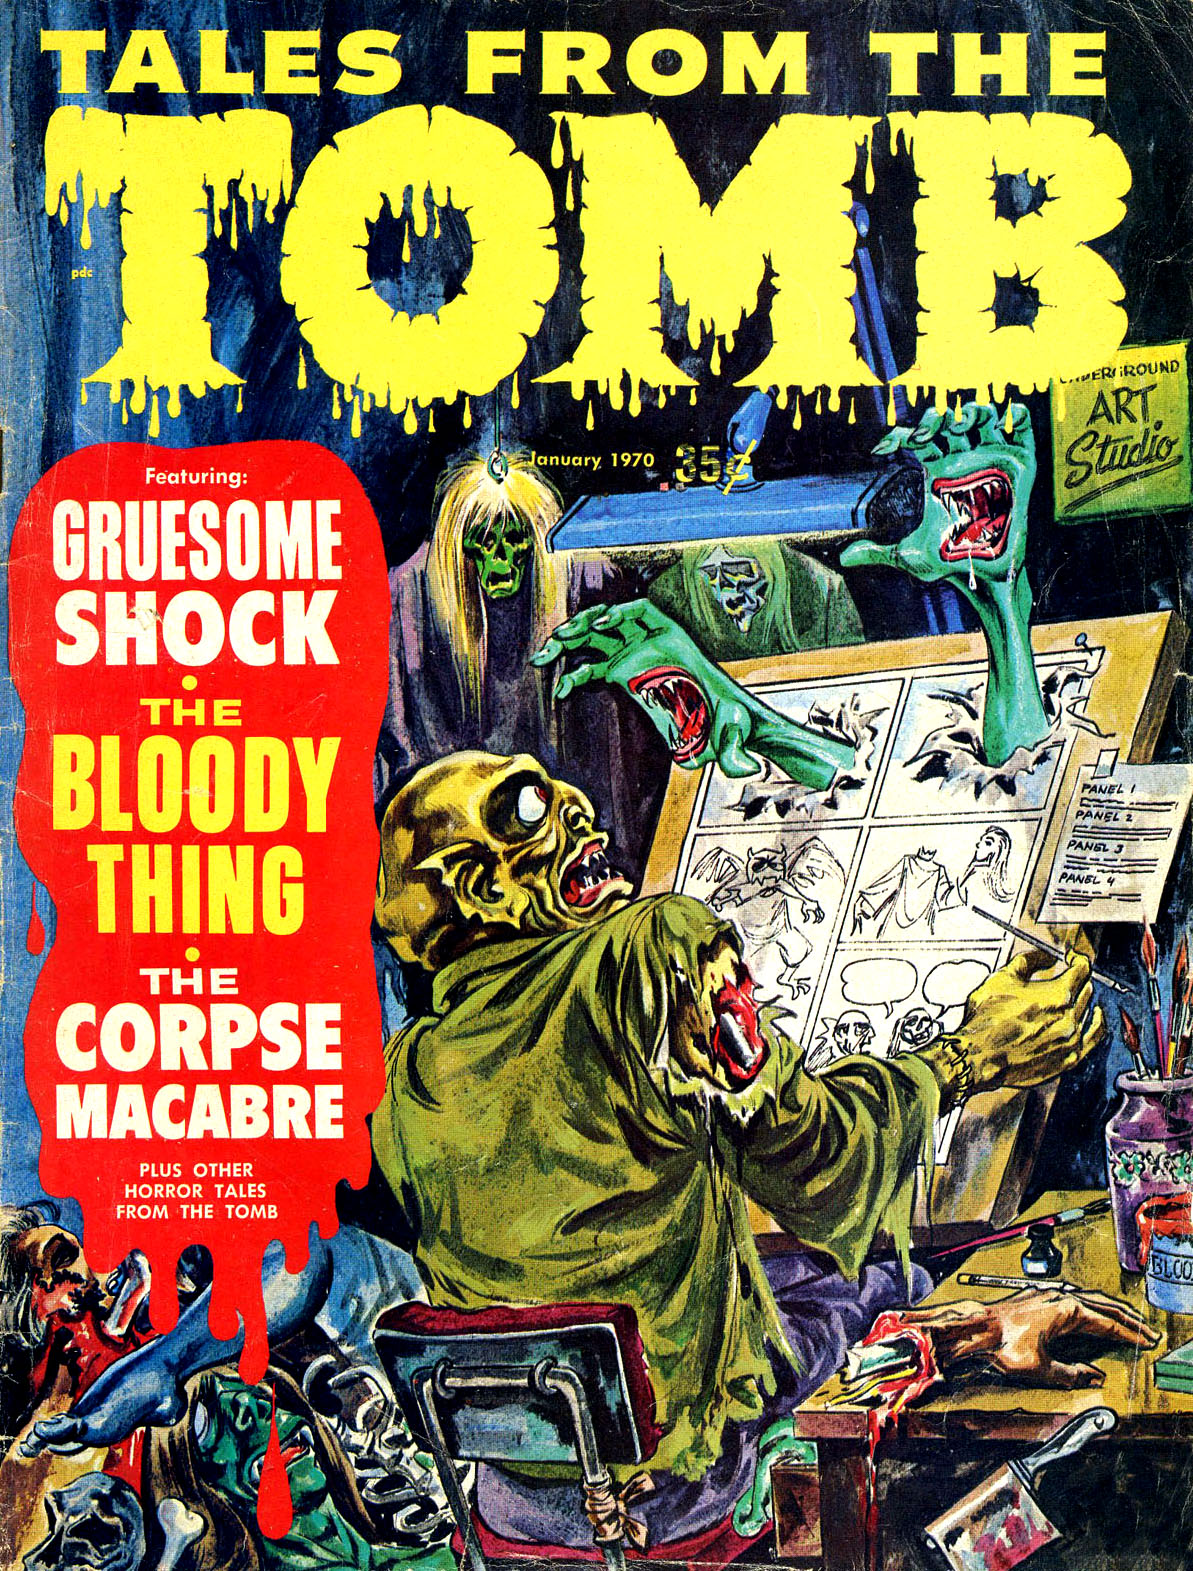 Tales from the Tomb - Vol. 2 #1 (Eerie Publications, 1970)